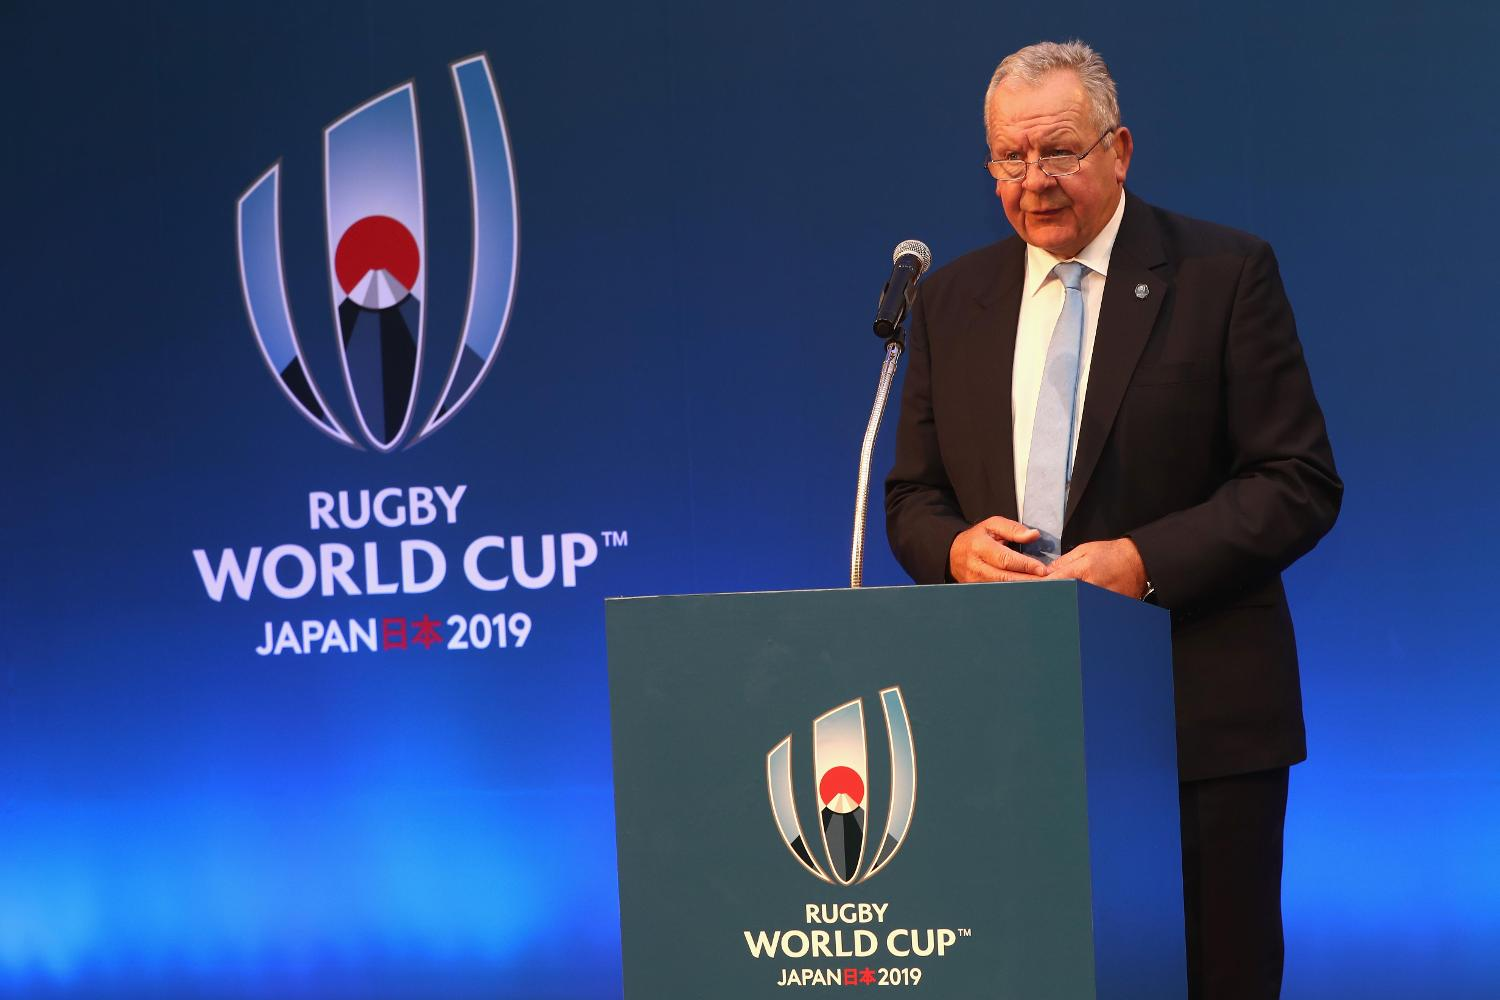 Rugby World Cup 2019 Pool Draw - Previews